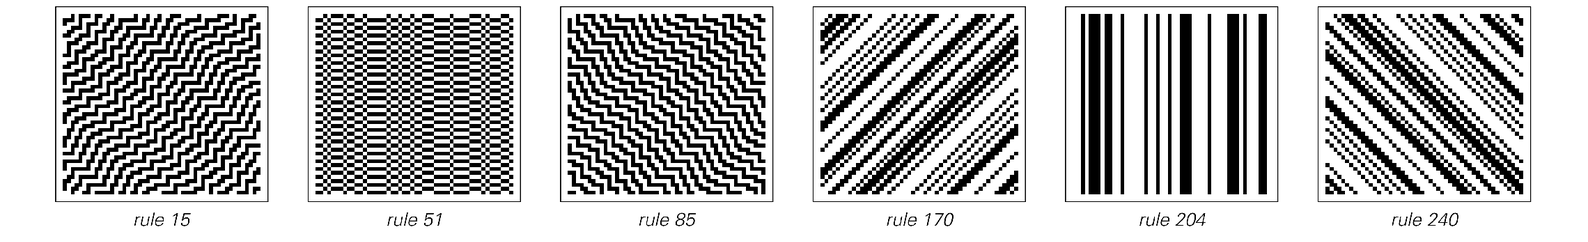 Behavior of the six reversible elementary cellular automata